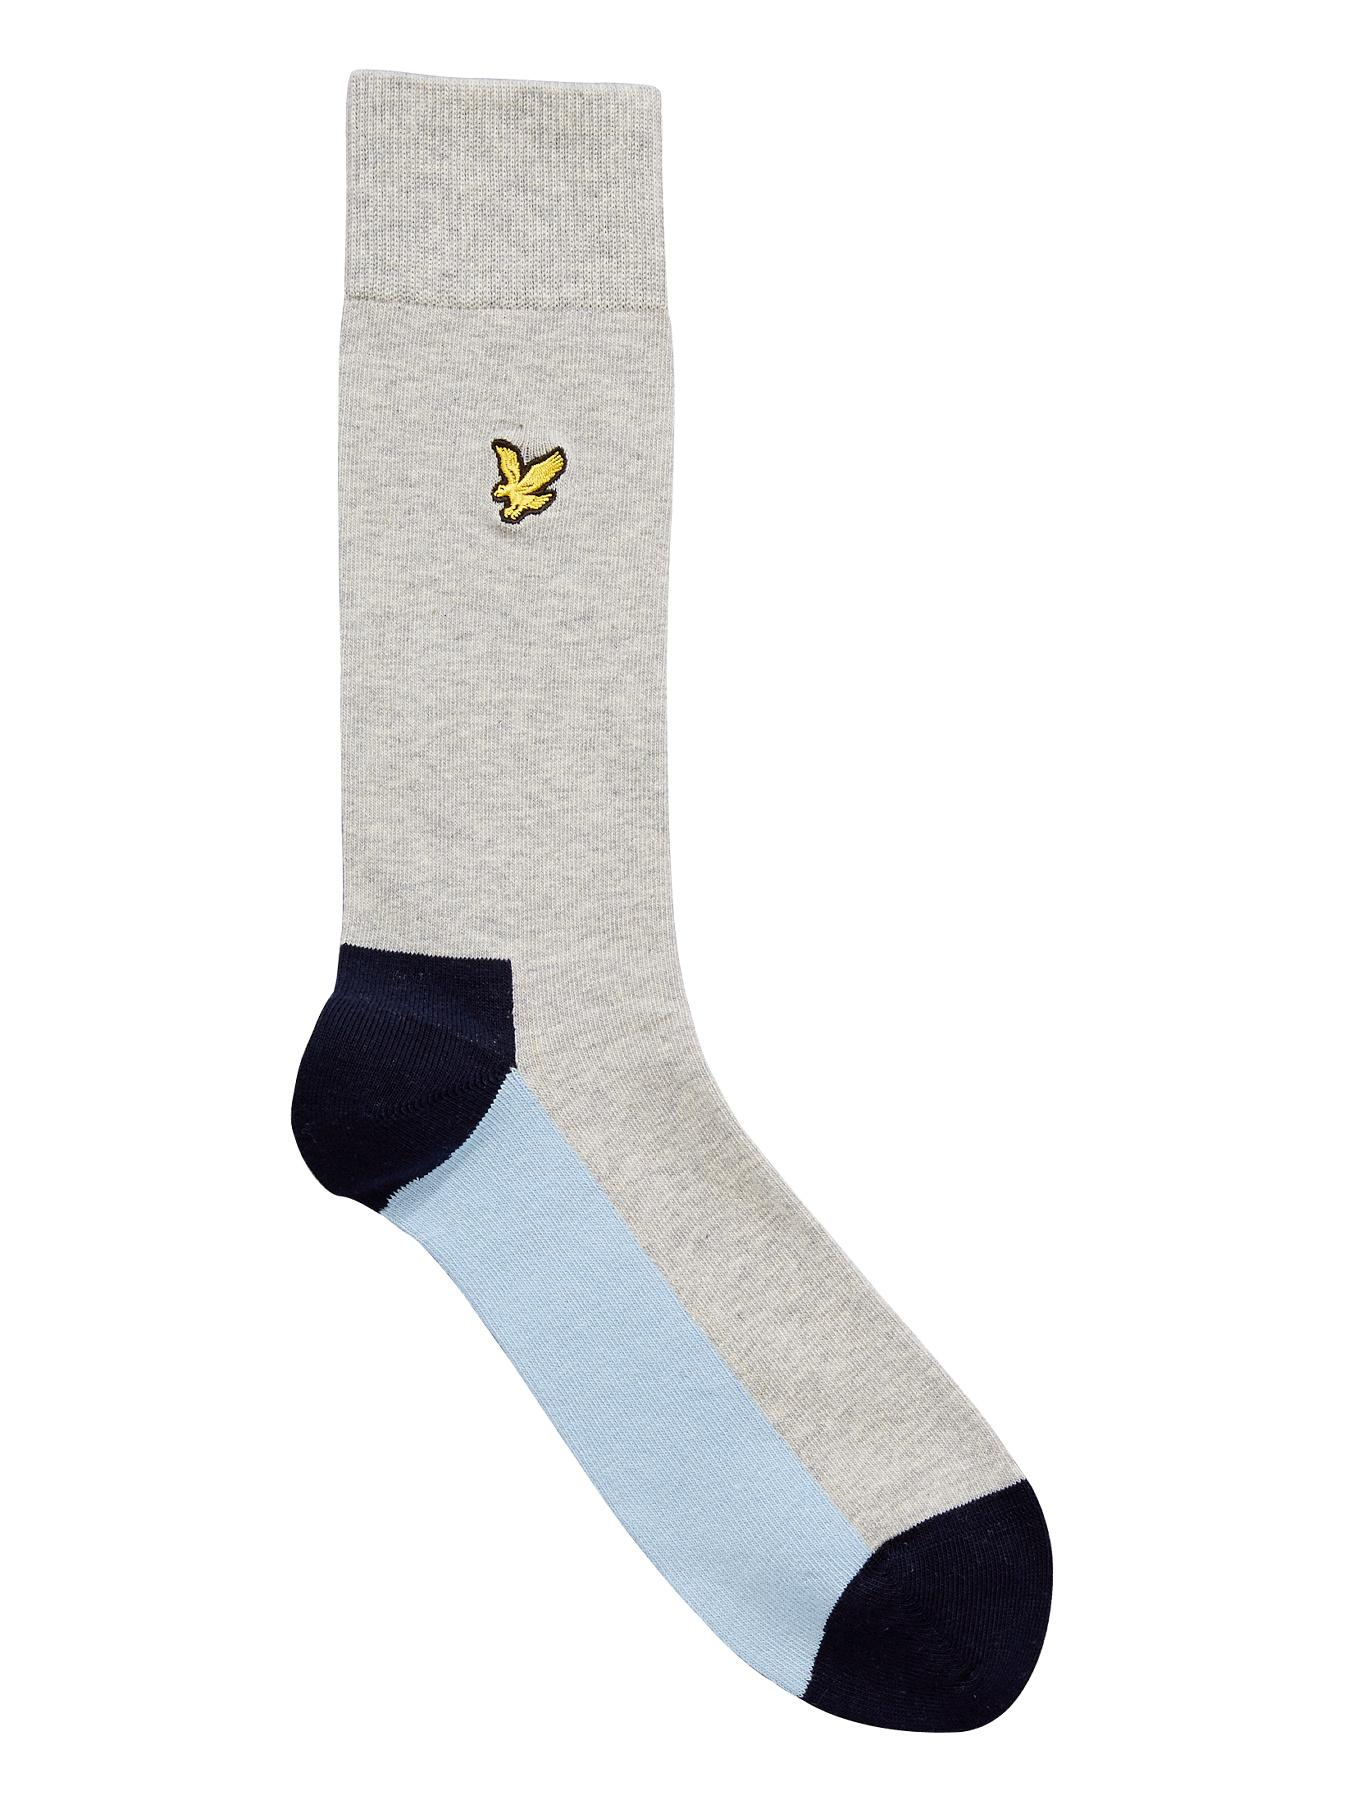 Lyle & Scott Mens Colour Block Socks - Grey, Grey